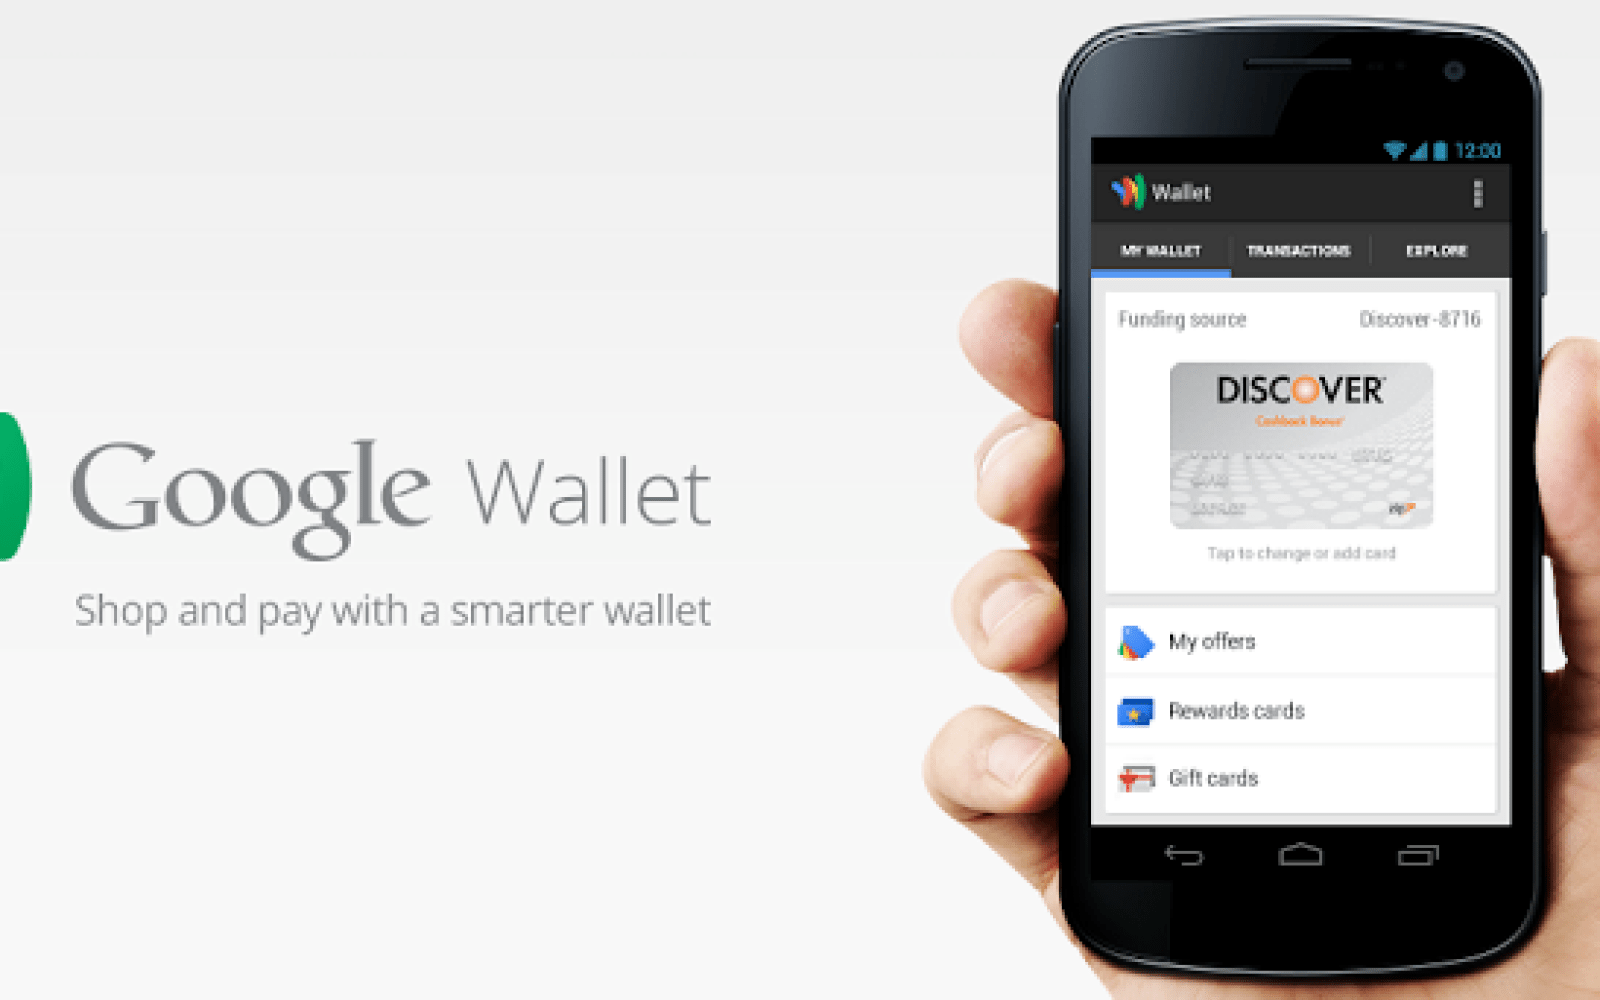 Sprint adds Google Wallet support to HTC One, Samsung Galaxy